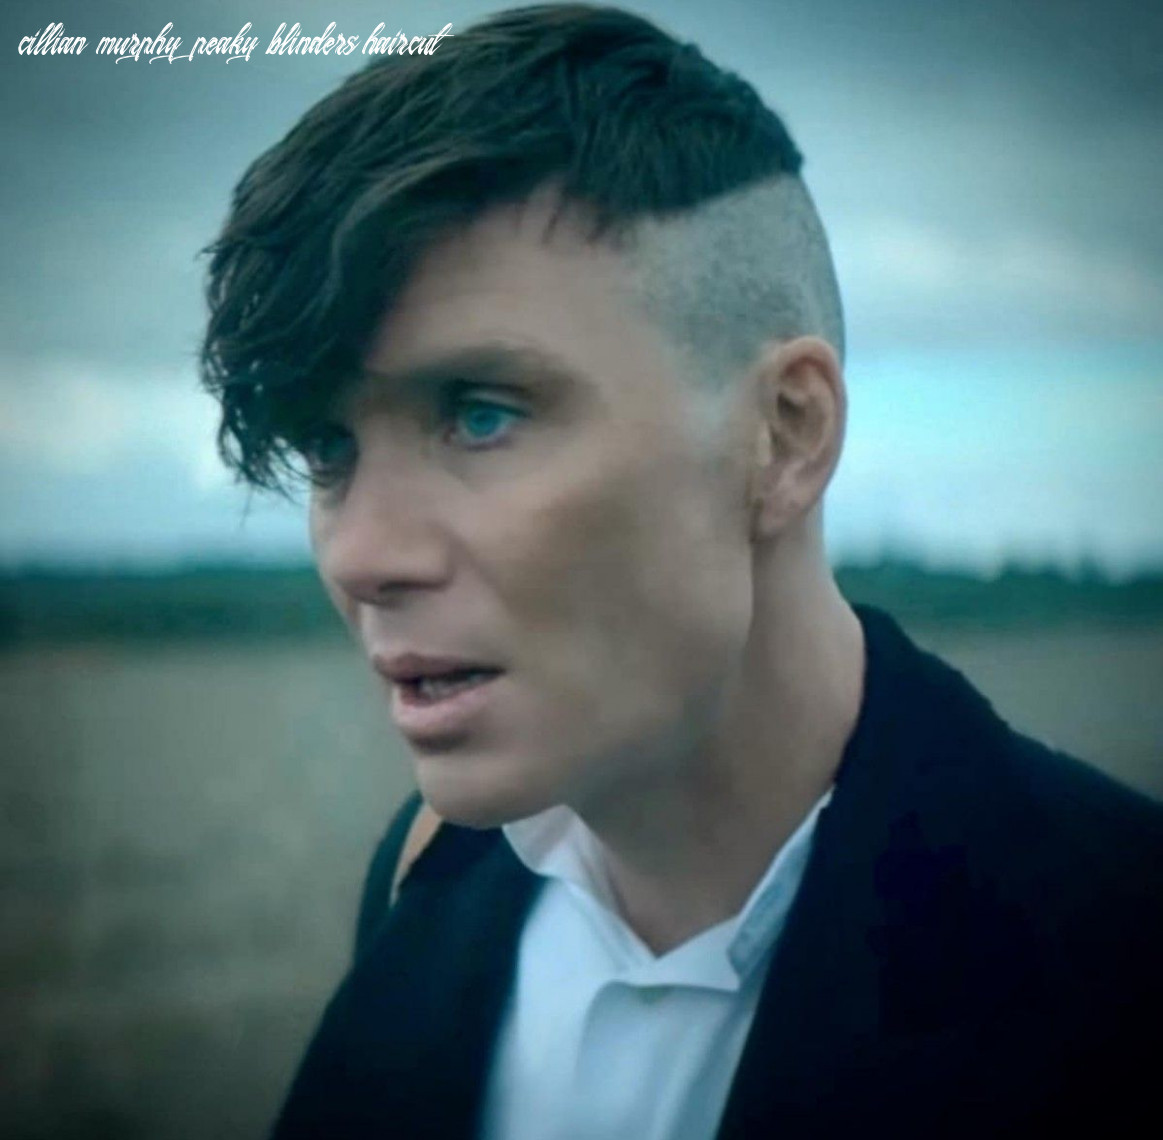 Cillian murphy as thomas shelby in peaky blinders s9 💙 (with